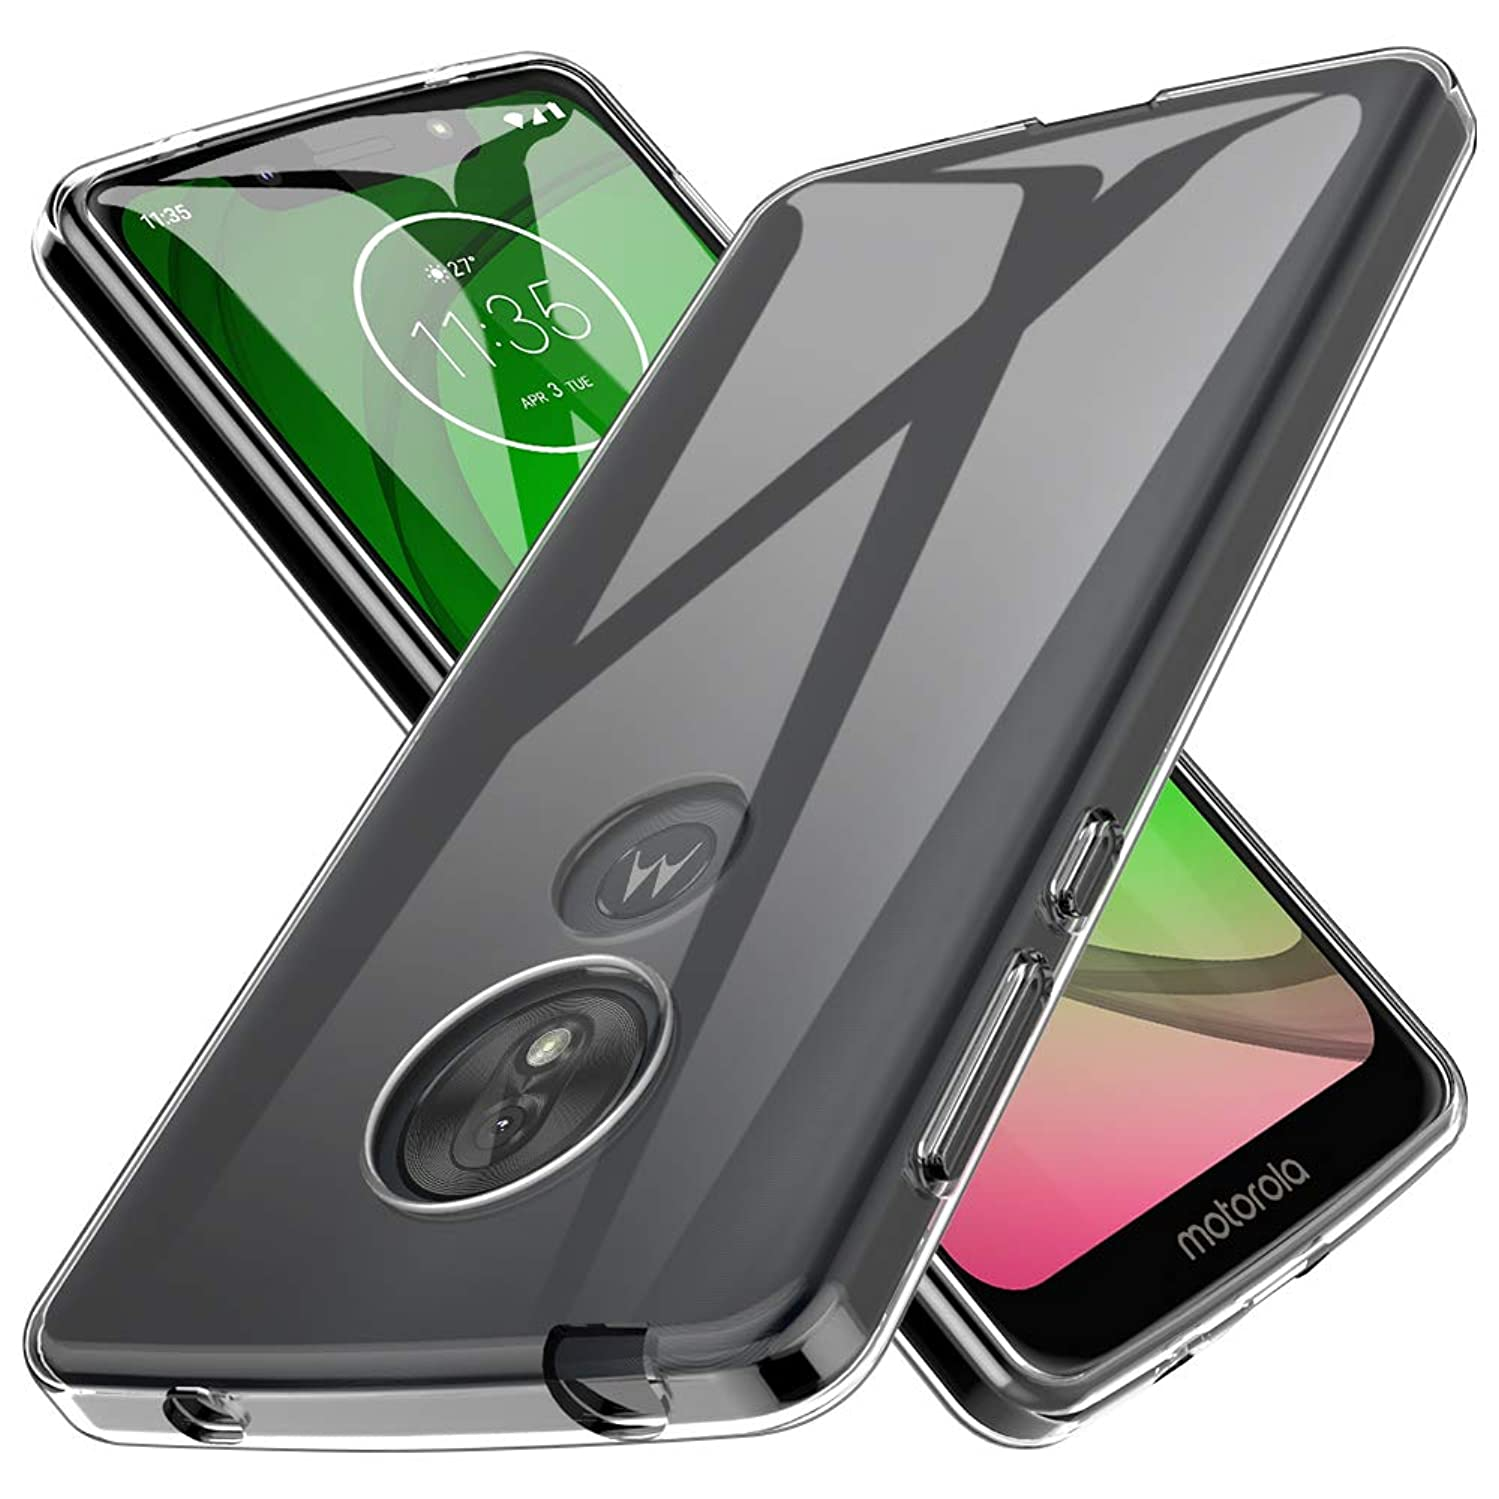 LK Case for Molorola Moto G7 Play, Ultra [Slim Thin] Scratch Resistant TPU Rubber Soft Skin Silicone Protective Case Cover for Moto G7 Play(Clear)